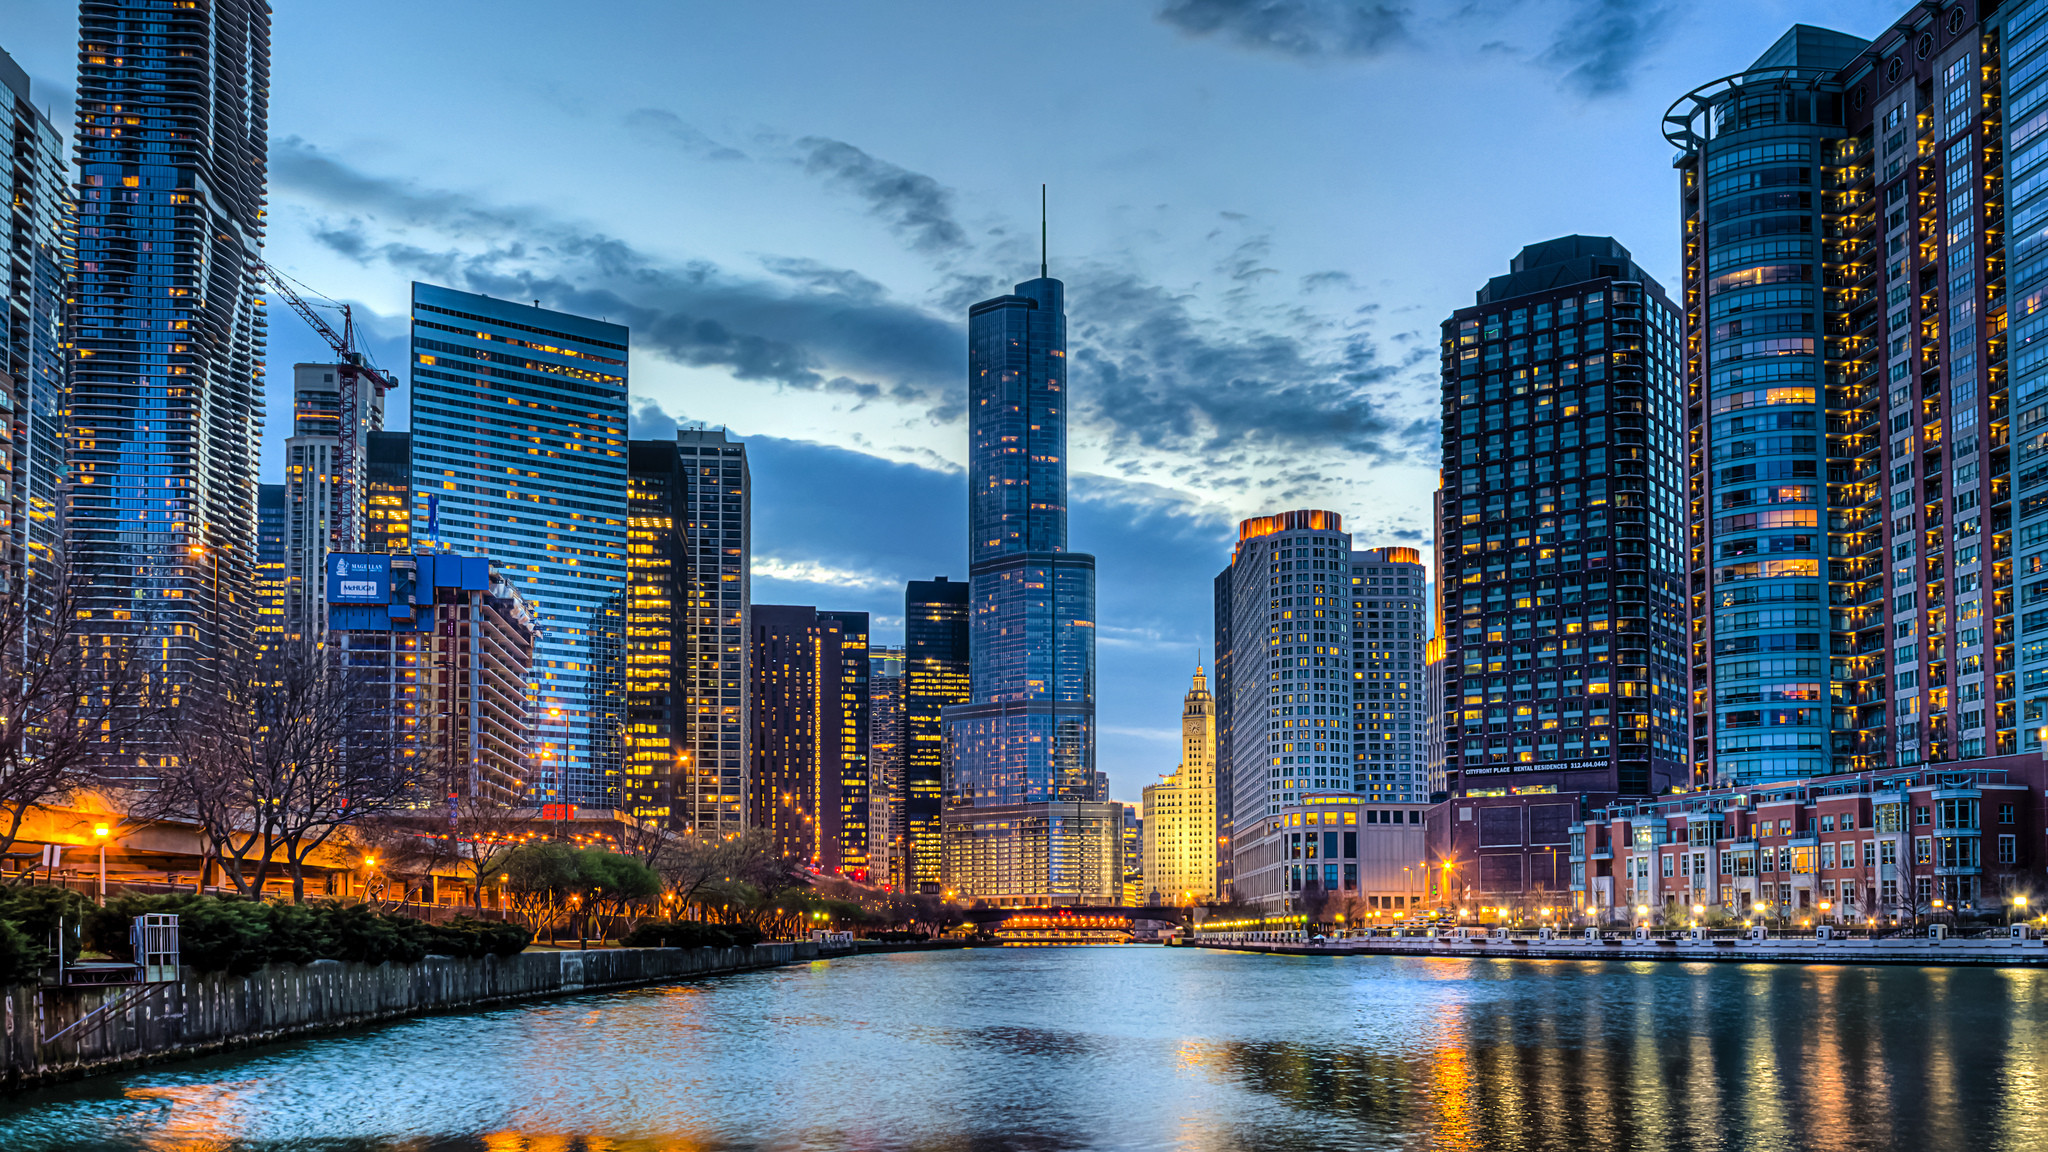 Chicago Wallpaper 71 images 2048x1152